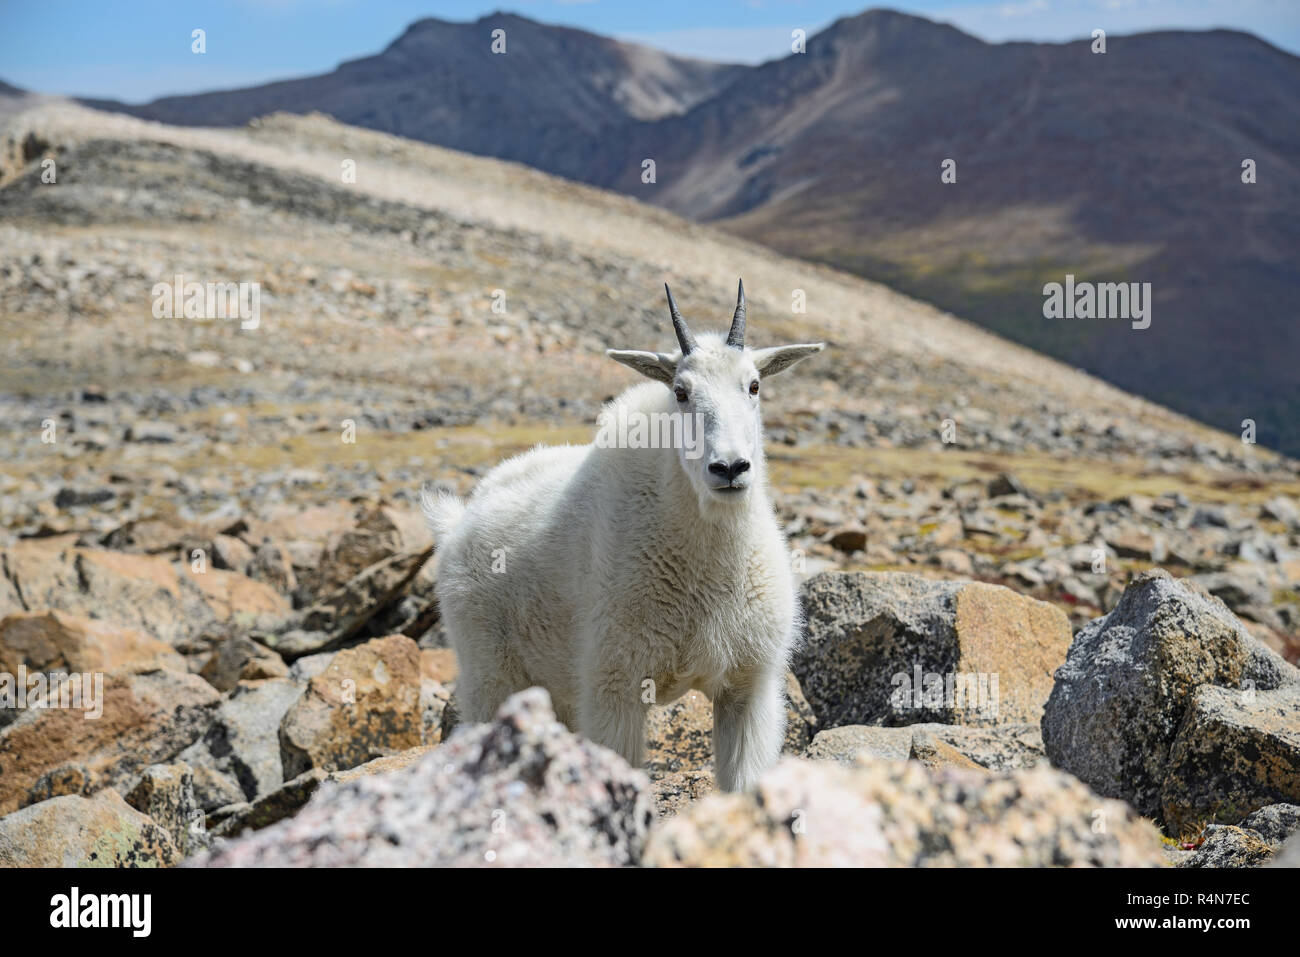 Mountain goat on Square Top Mountain in Colorado - Stock Image